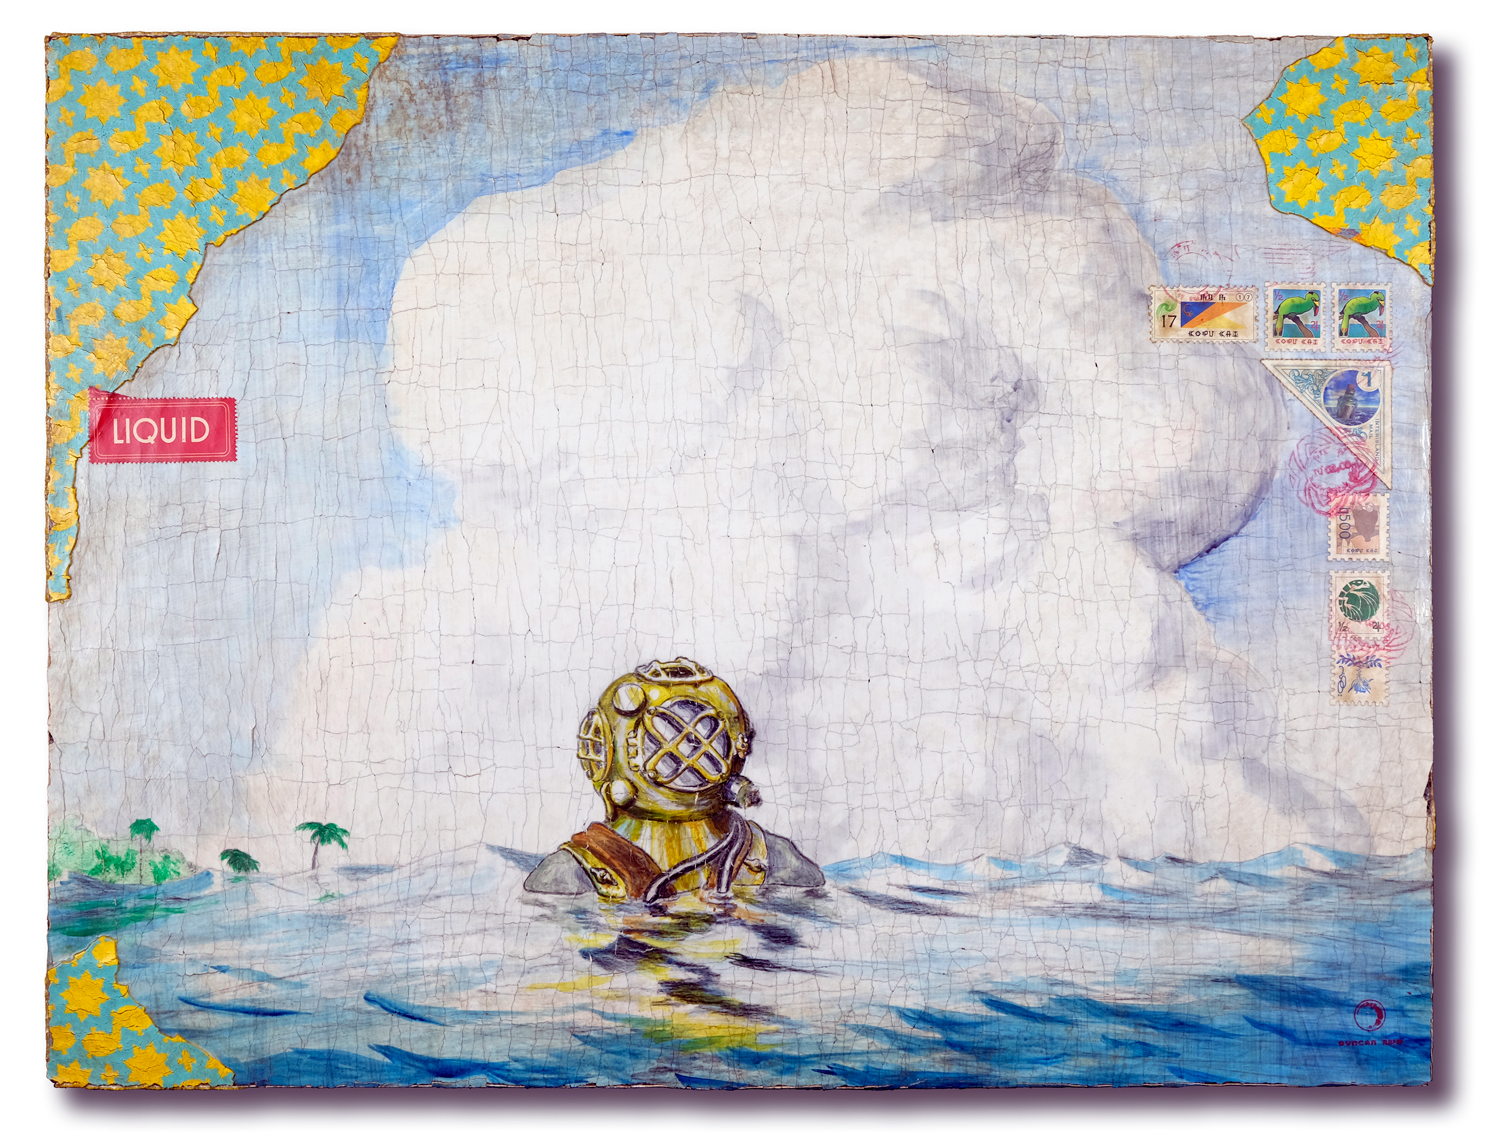 "Aquanaut, 16.5x21.5"", acrylic and colored pencil on wood"